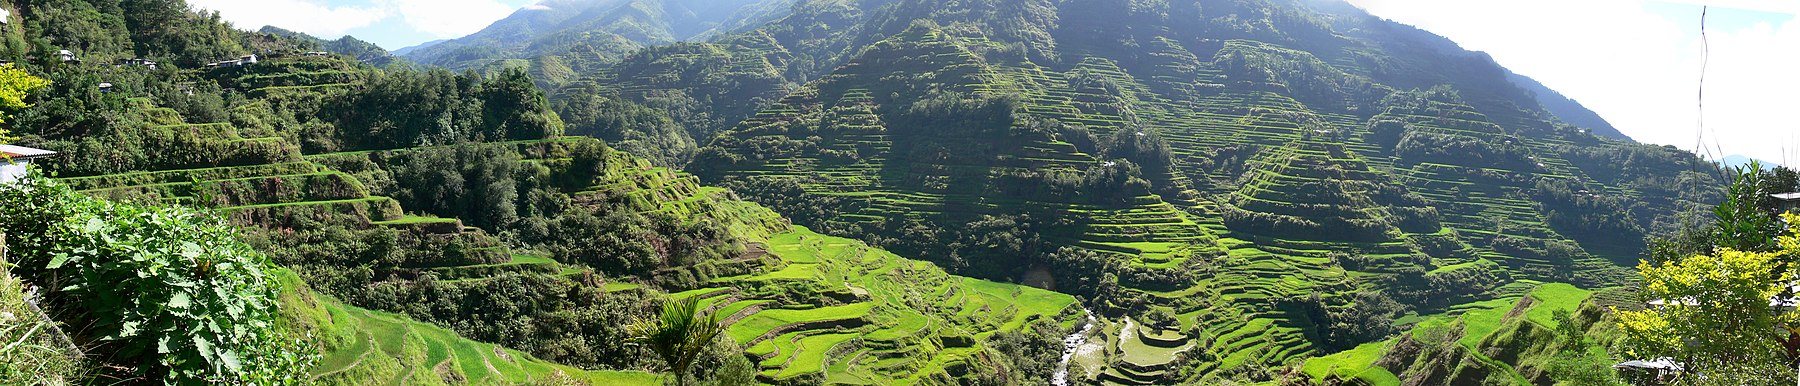 The Banaue Rice Terraces where Ifugao/Igorot utilized terrace farming in the steep mountainous regions of northern Philippines over 2000 years ago. - Philippines